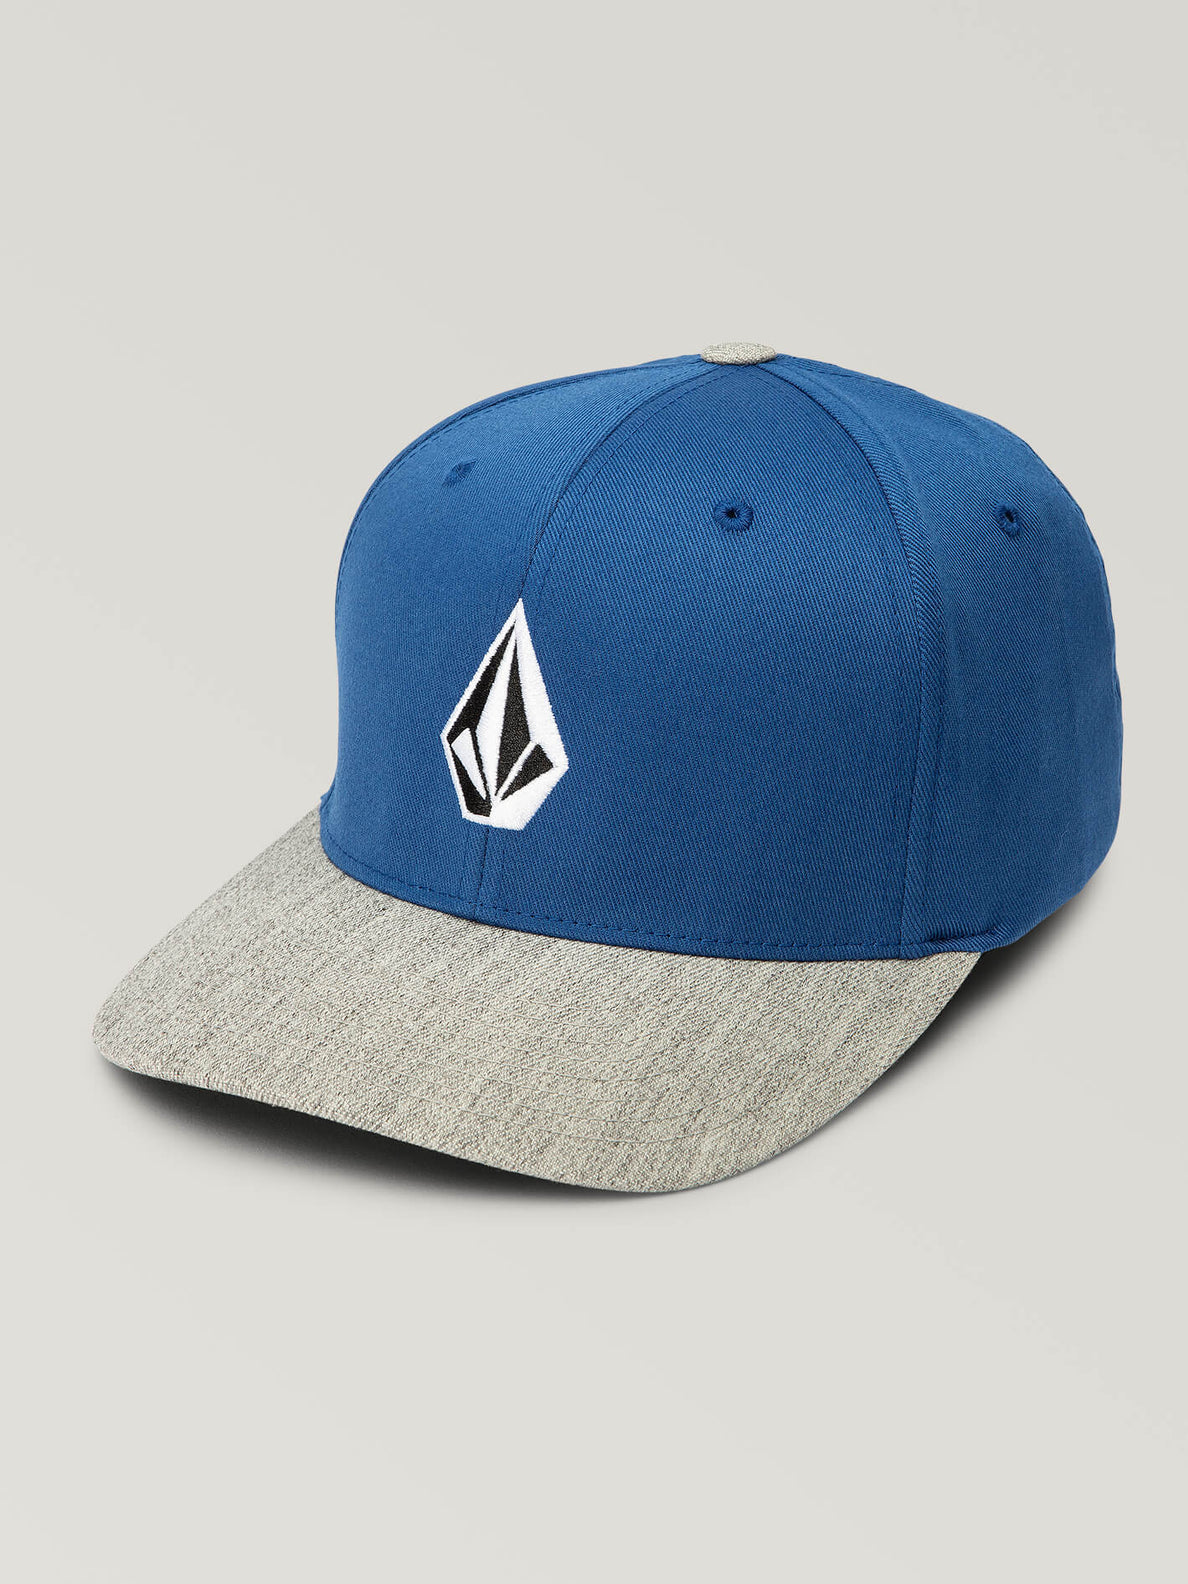 Full Stone Xfit Hat In Coastal Blue, Front View